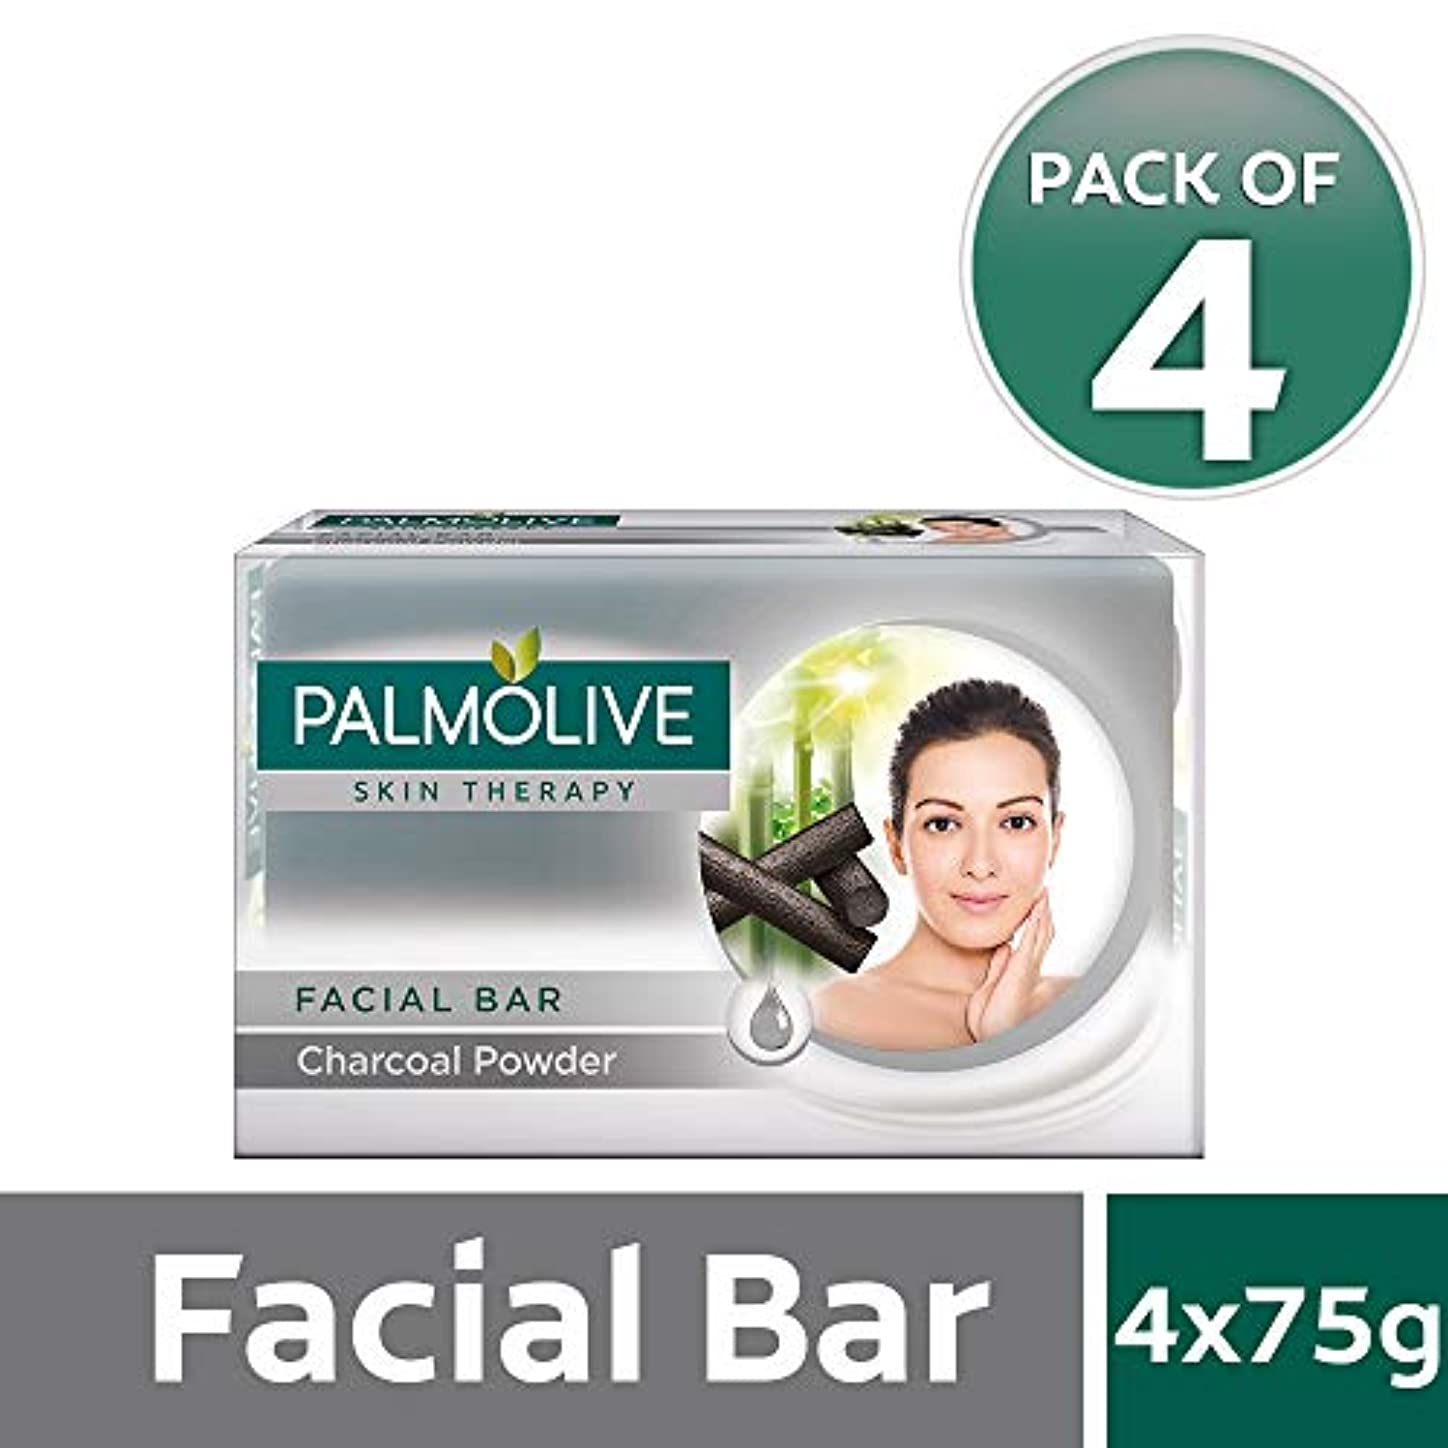 ハミングバード上流の文芸Palmolive Skin Therapy Facial Bar Soap with Charcoal Powder - 75g (Pack of 4)